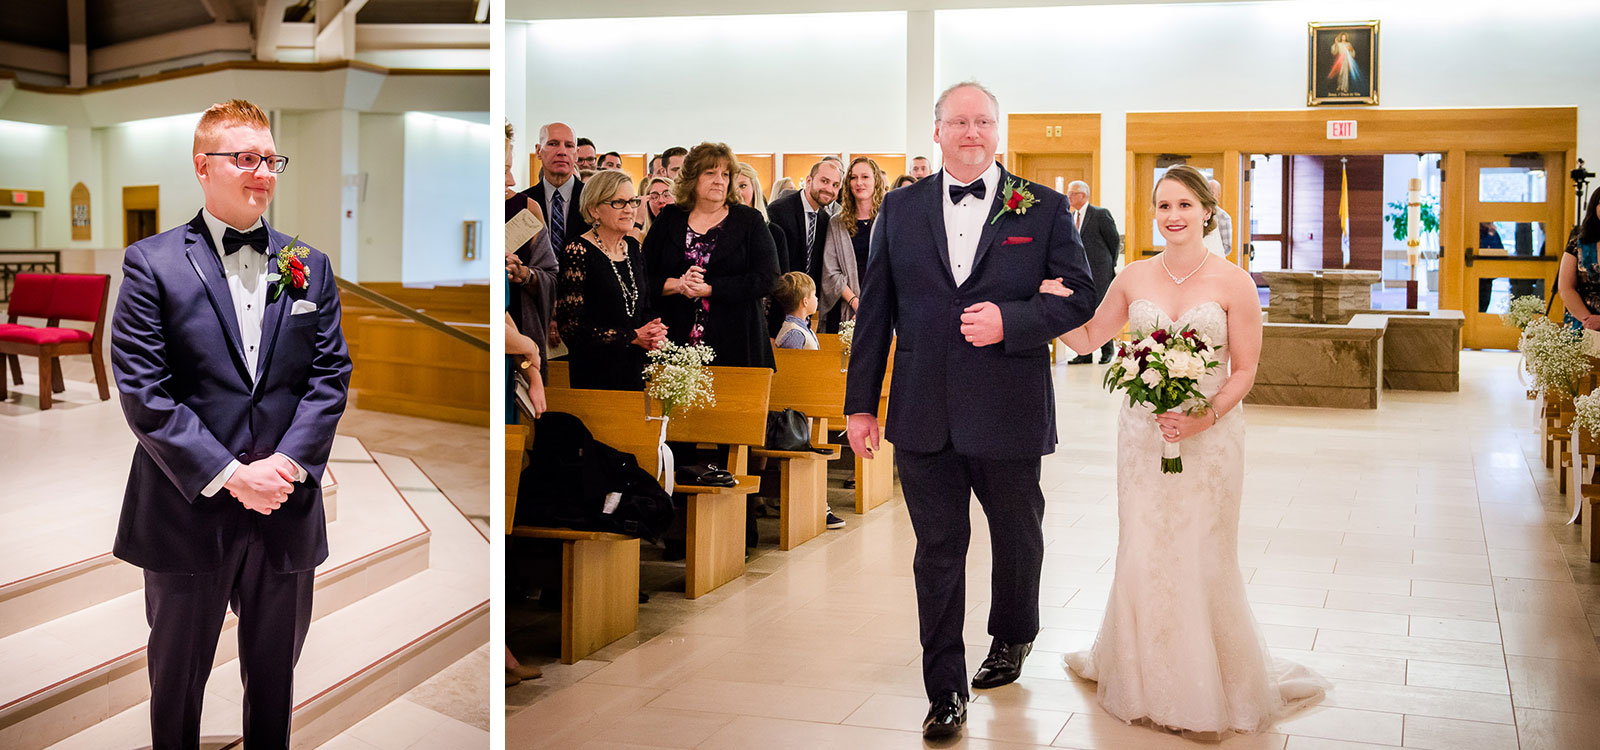 Eric_and_Christy_Photography_Blog_Wedding_Erica_Mike-12-13